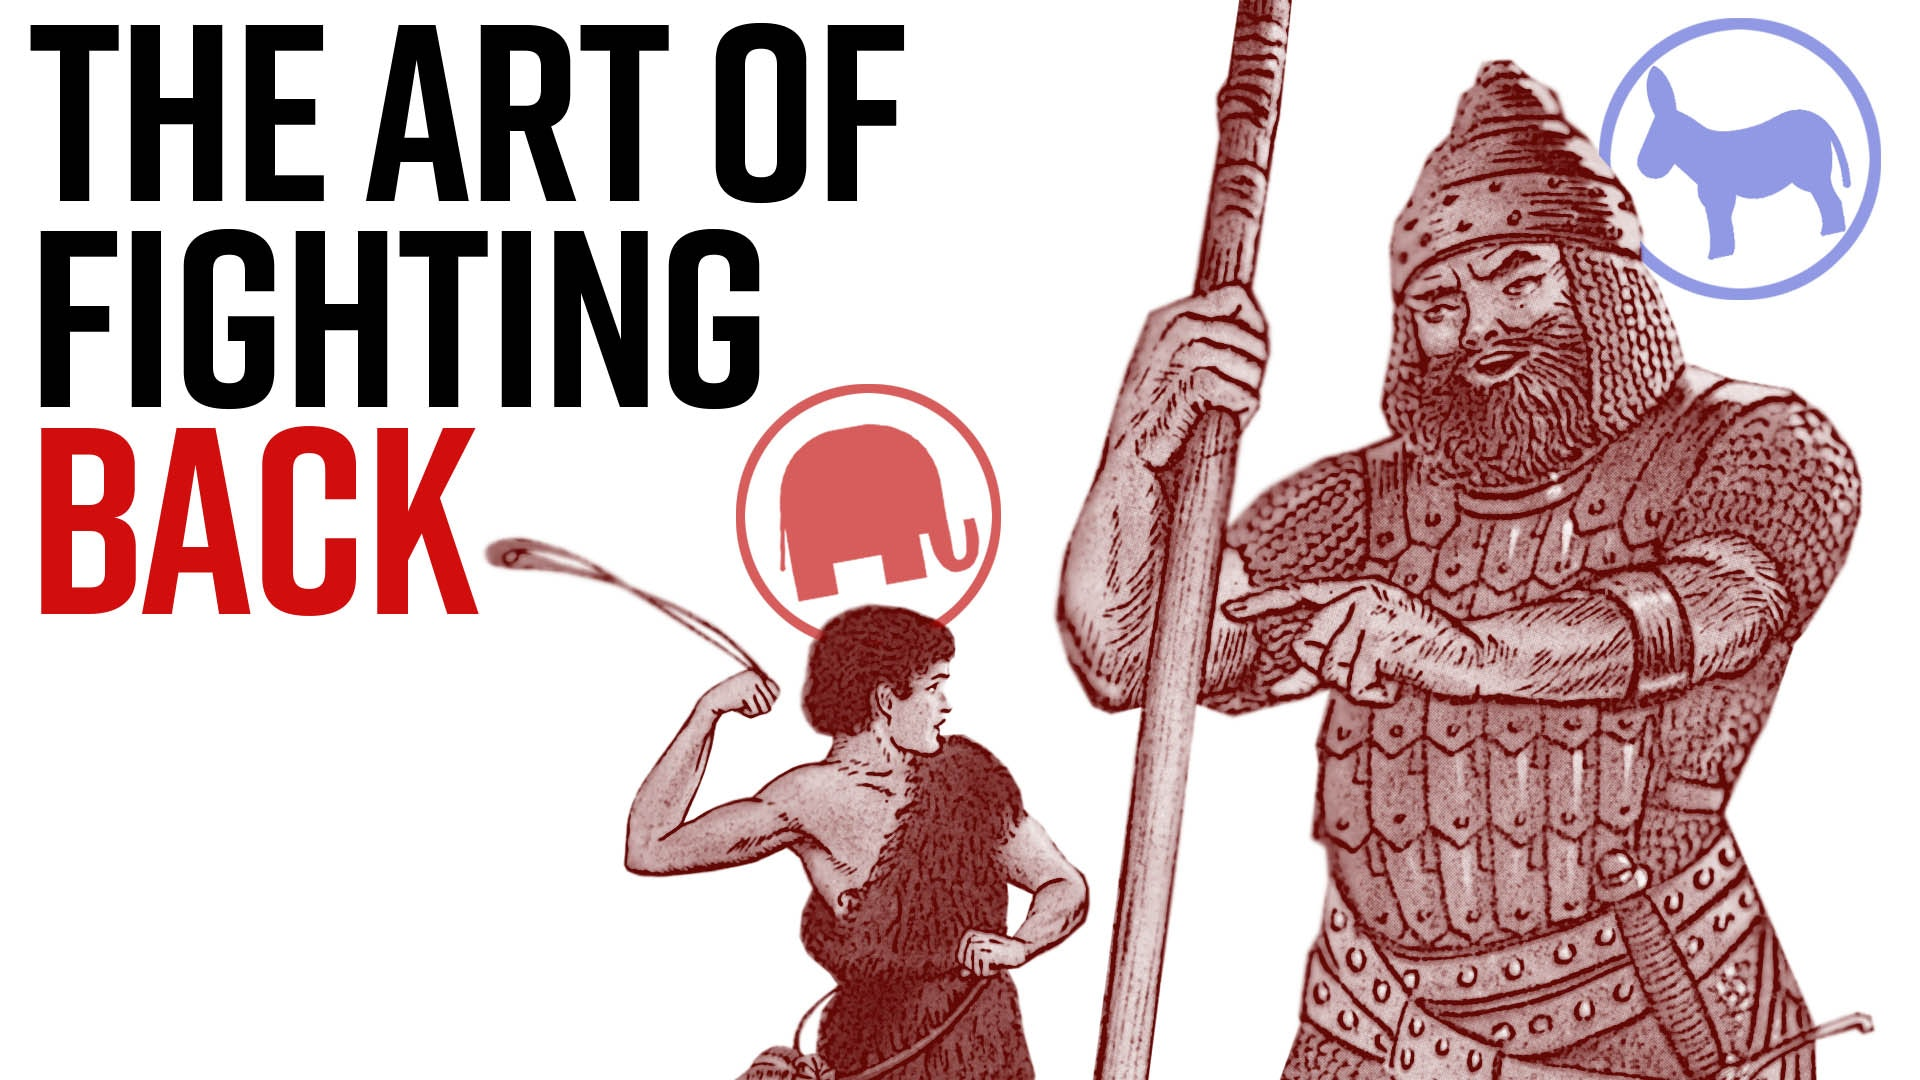 Ep. 1026 - The Art of Fighting Back